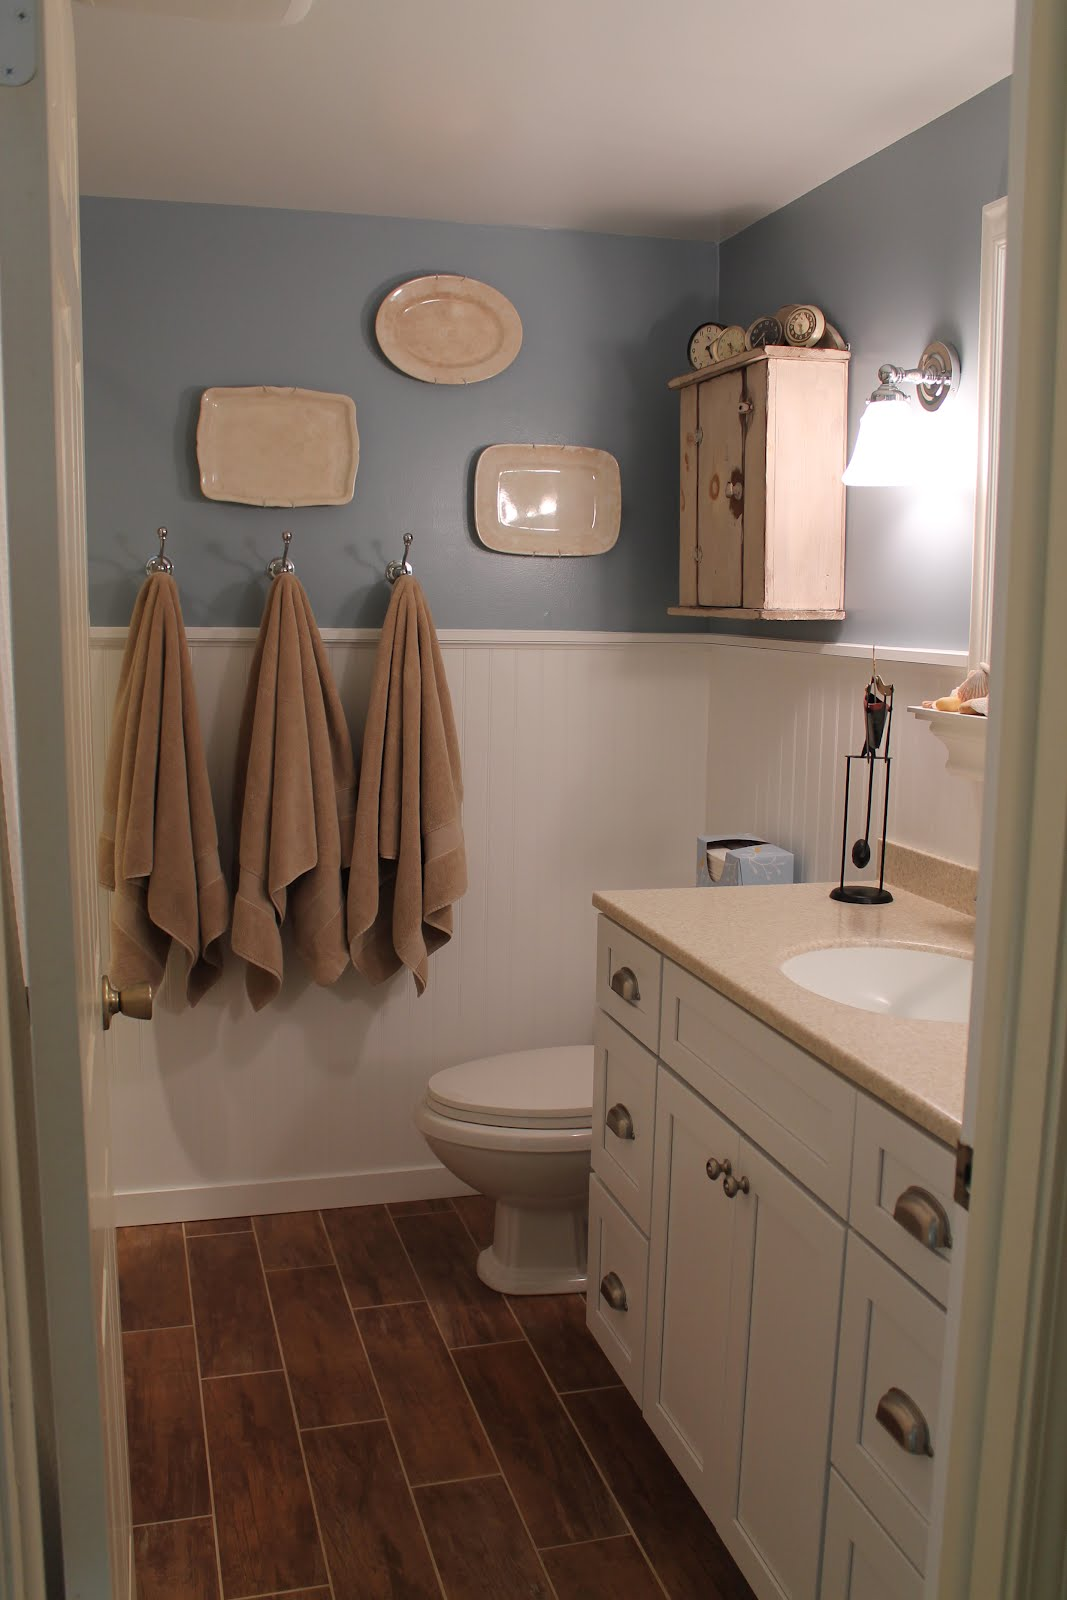 1 bathroom remodel using woodgrain tile by elizabeth and co featured on remodelaholic bathroom remodel tile floor93 remodel